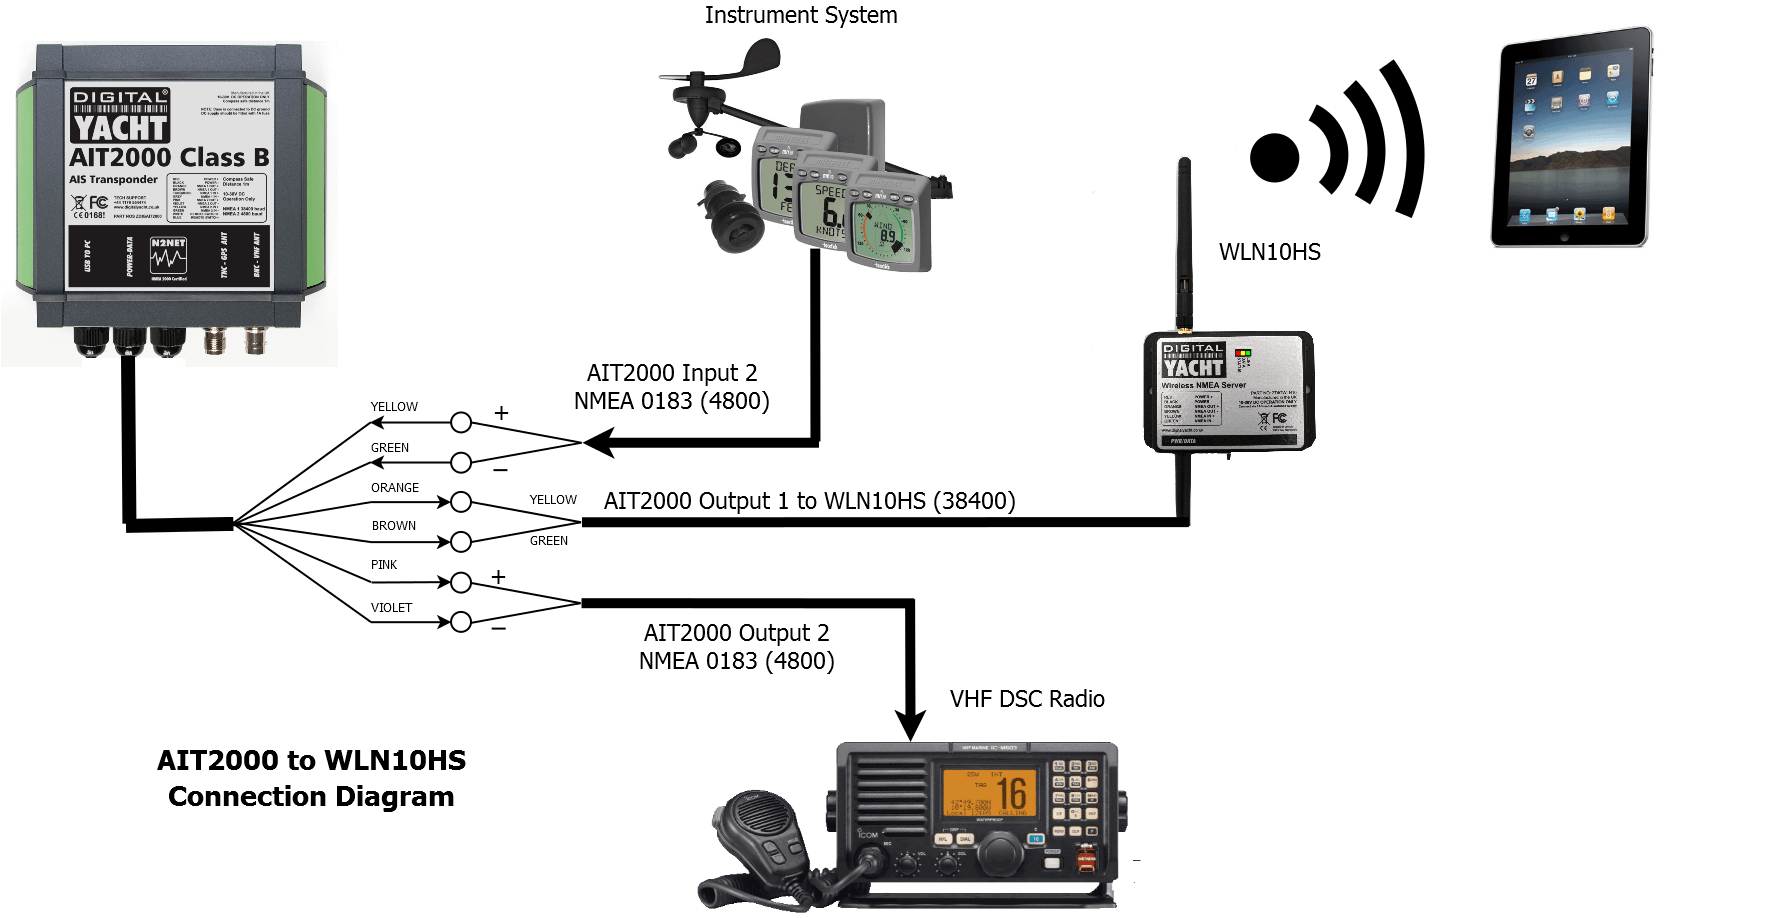 Csm 2001 F150 Wiring Diagram Question About Gps Goldstar 27 Images Schematic Reciever Dryer